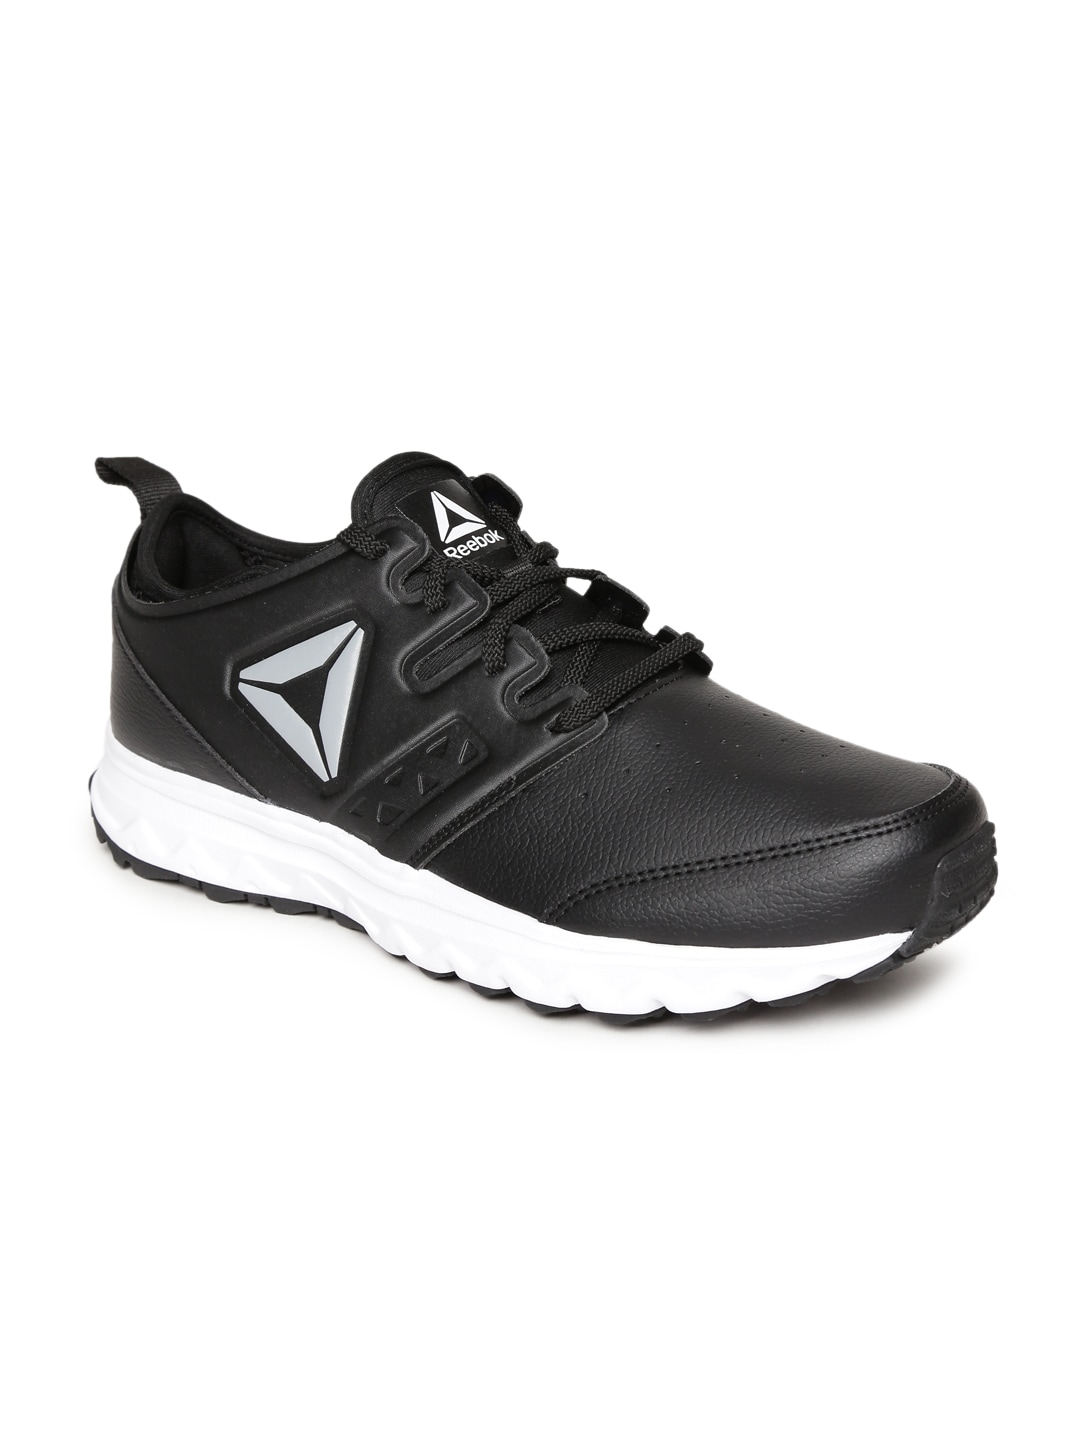 Reebok Walking Shoes Men - Buy Reebok Walking Shoes Men online in India 6fb95106a